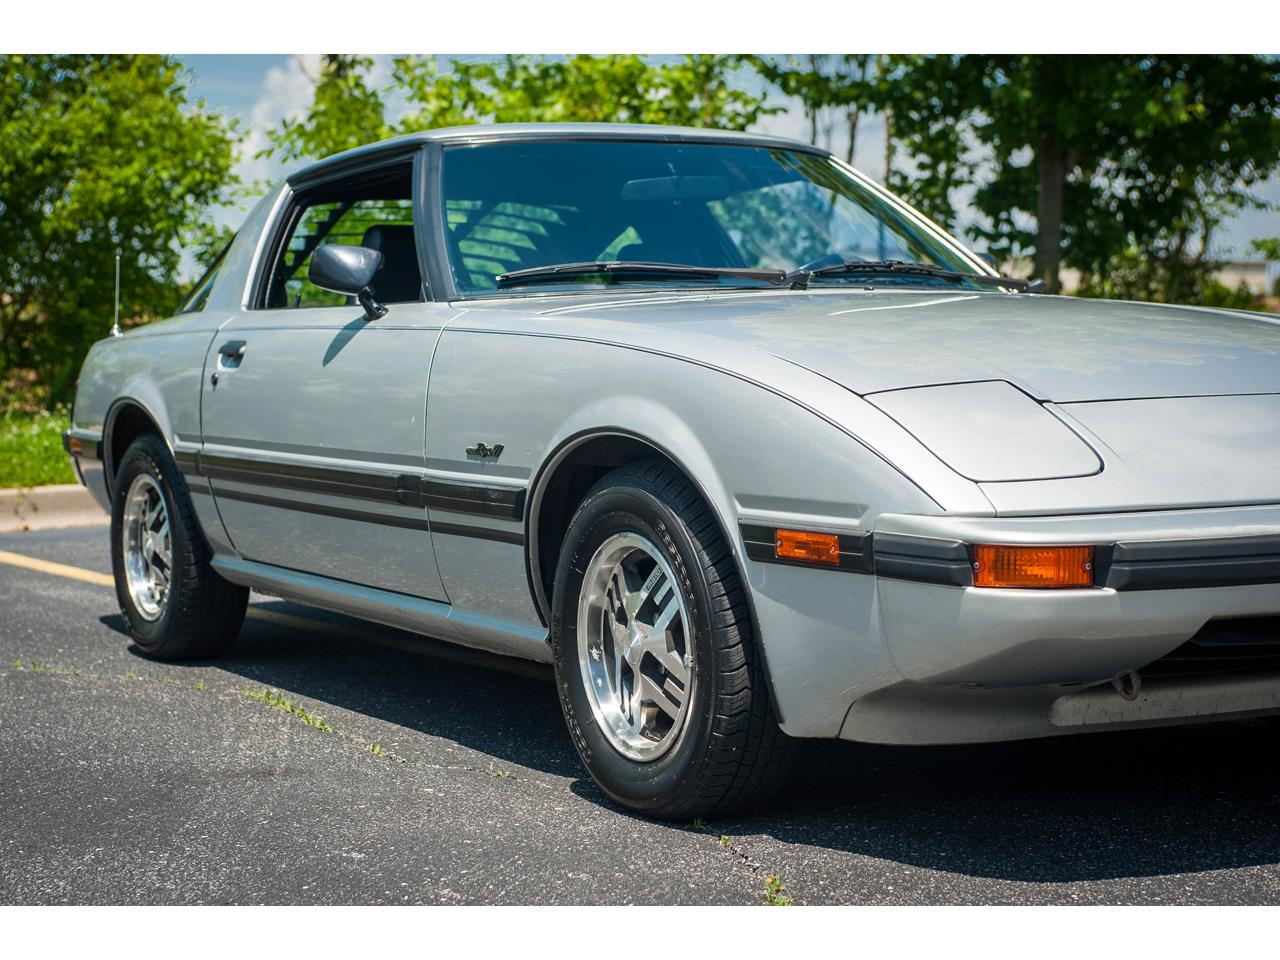 Large Picture of 1982 Mazda RX-7 - $14,500.00 - QB9V